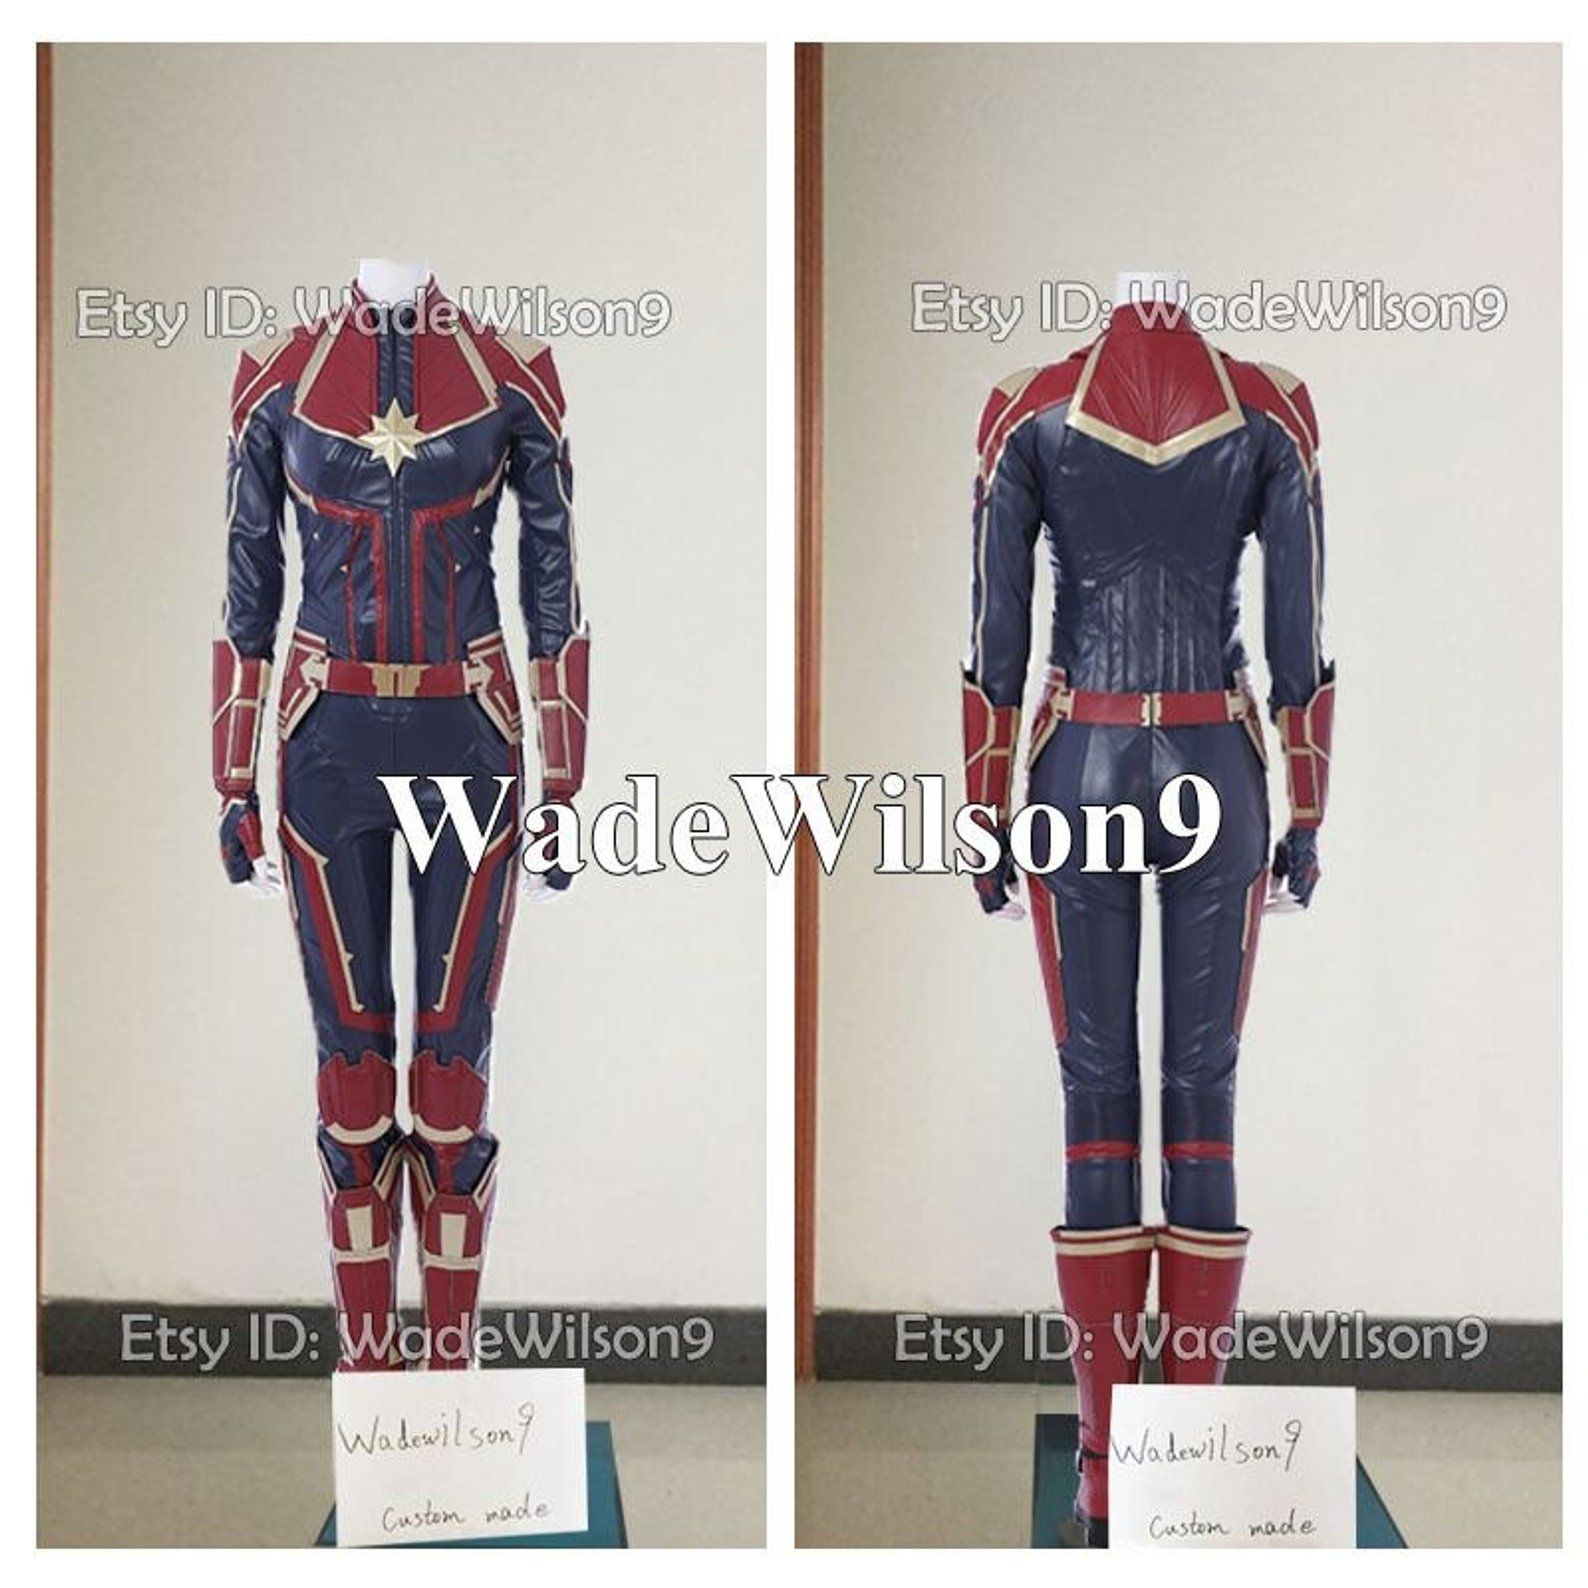 Captain Marvel Ms Marvel Carol Danvers Cosplay Costumes Etsy Check out our captain marvel costume selection for the very best in unique or custom, handmade pieces from our costumes shops. pinterest